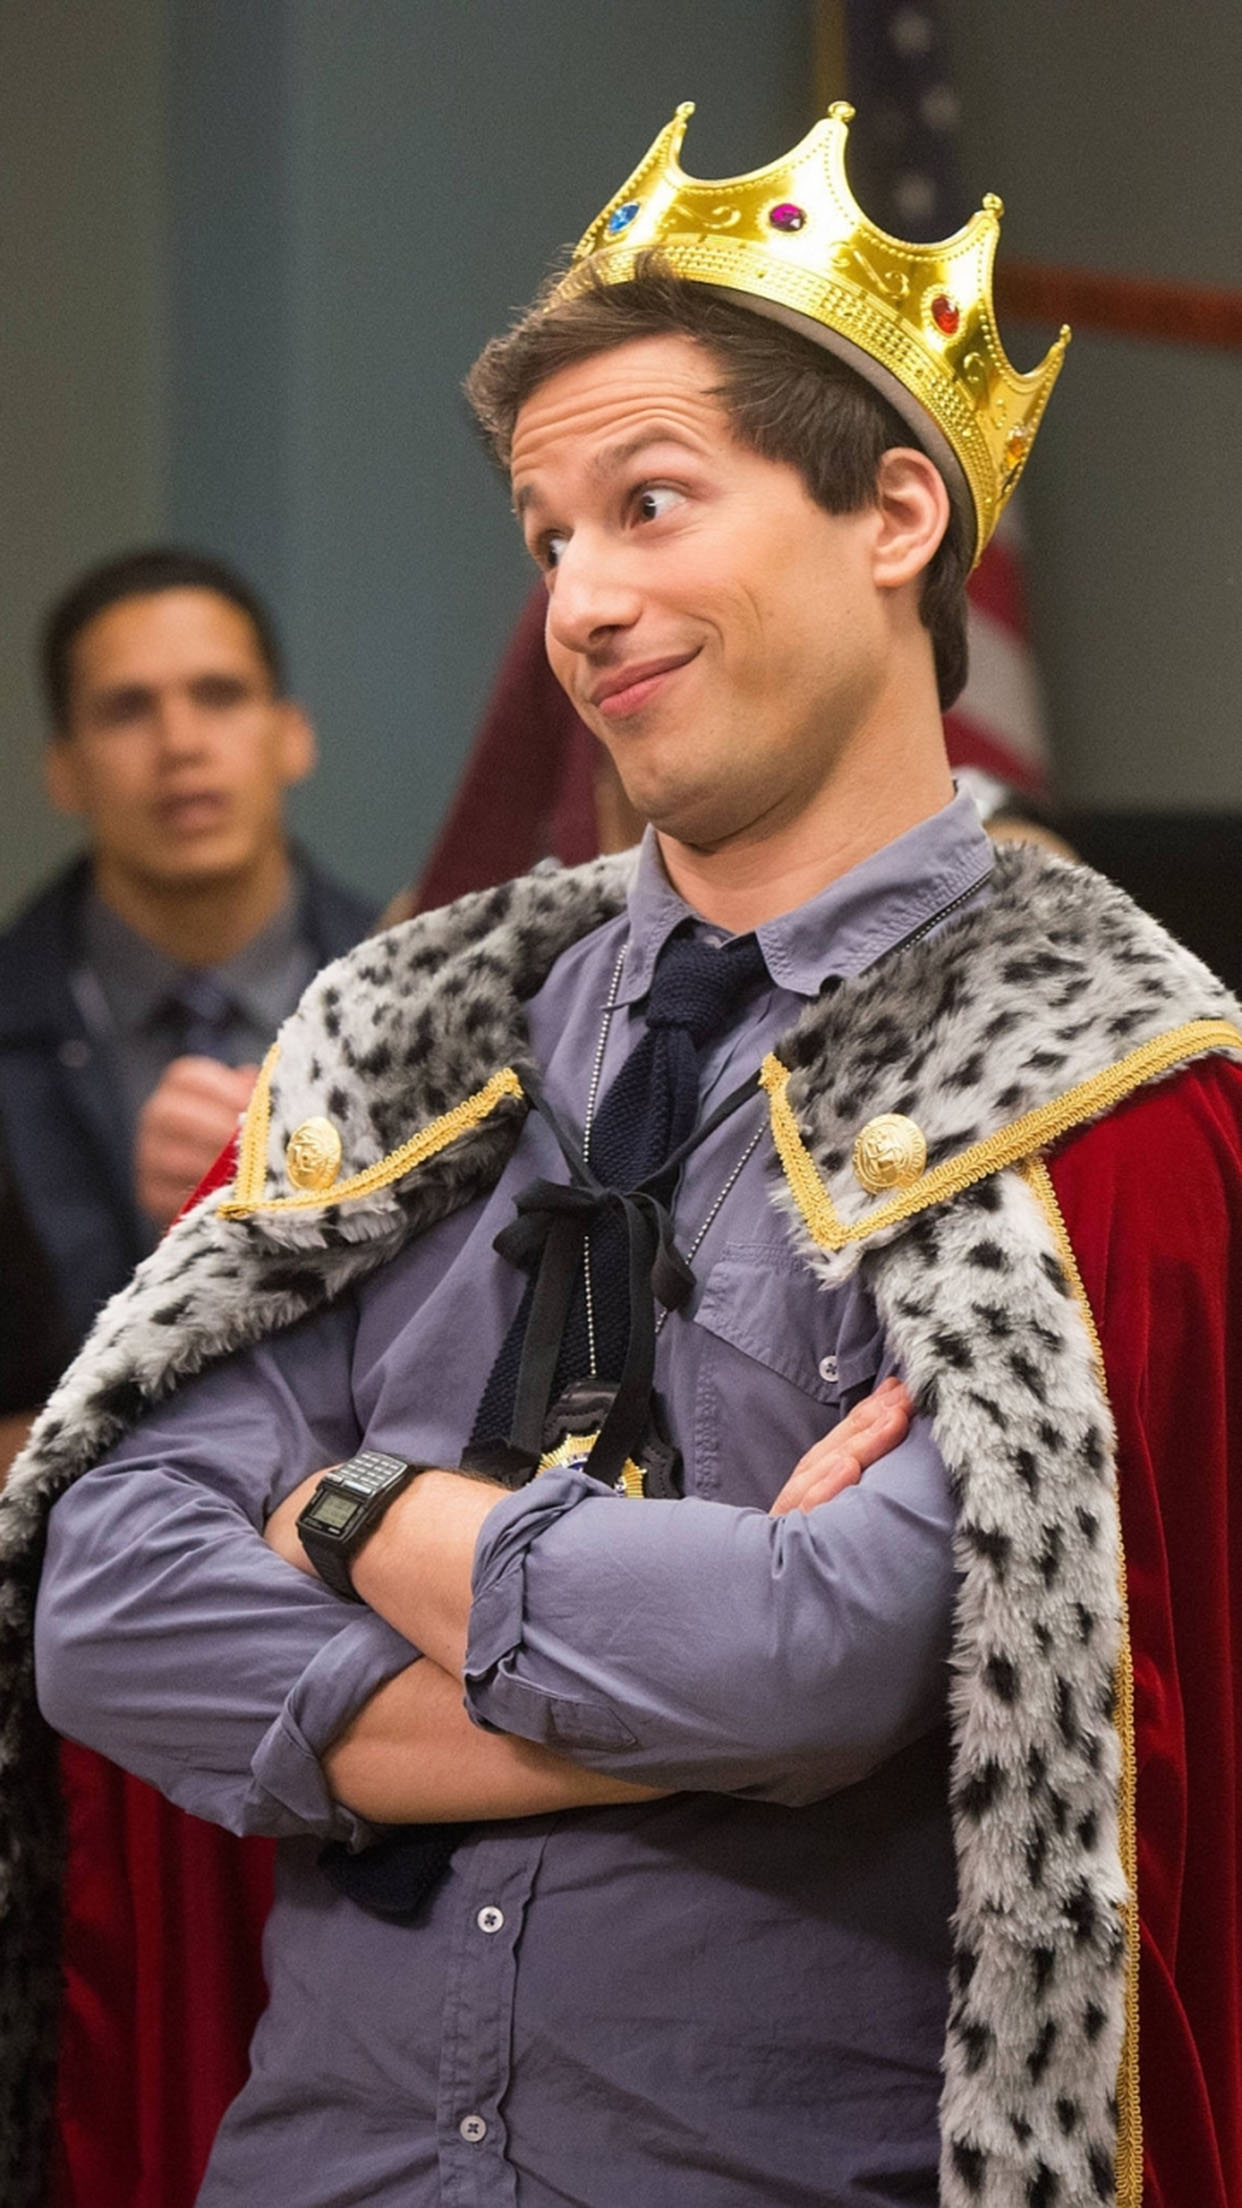 Brooklyn Nine Nine Andy Samberg 3Wallpapers iPhone Parallax Brooklyn Nine nine: Andy Samberg